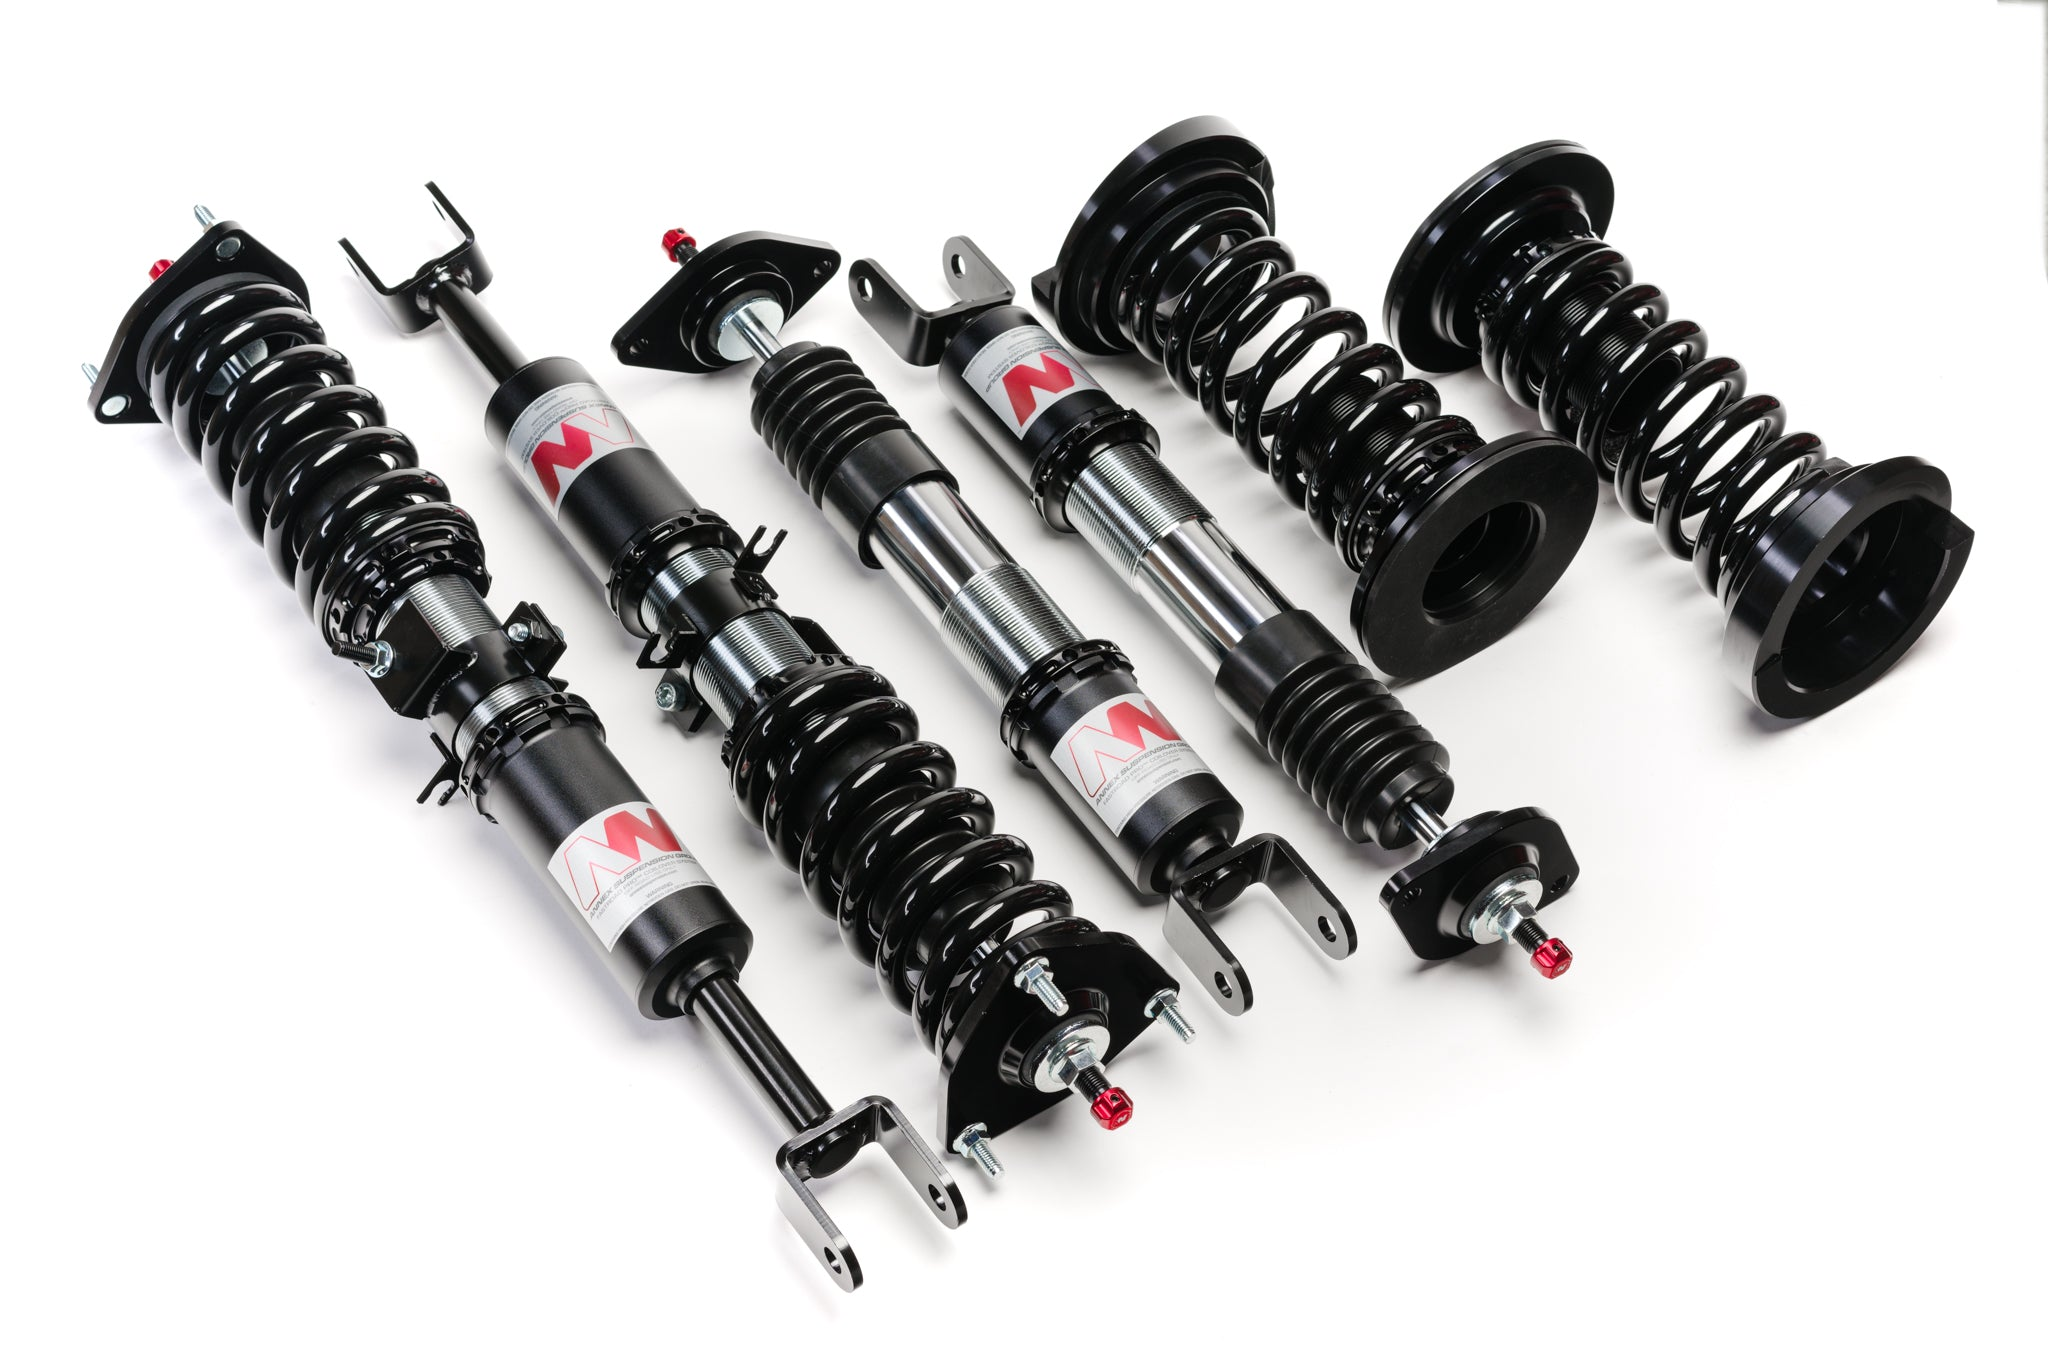 Annex Suspension Kits - Fastroad Pro Coilovers Nissan 2003-2009 350Z for Daily Driving (Street Driving and Track Comfort)